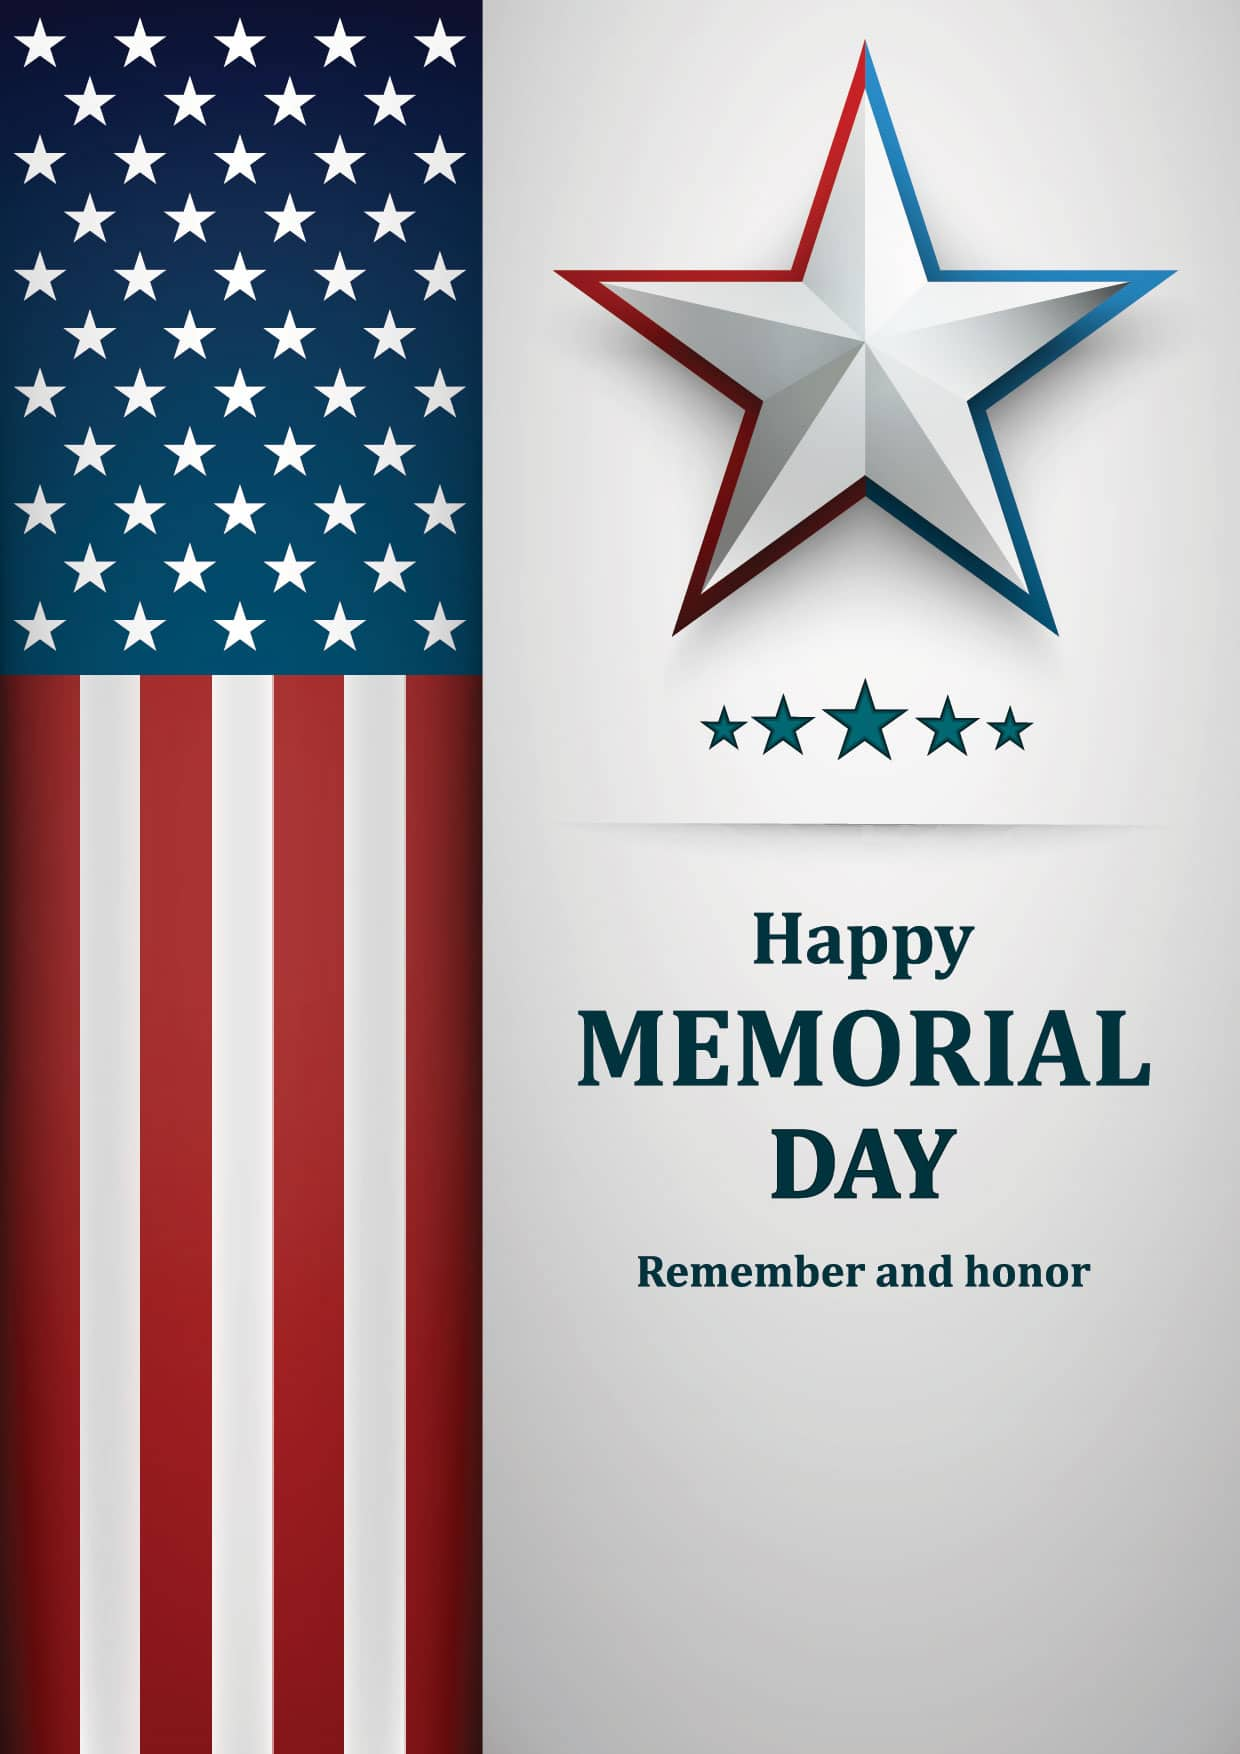 Happy Memorial Day - Remember and honor!